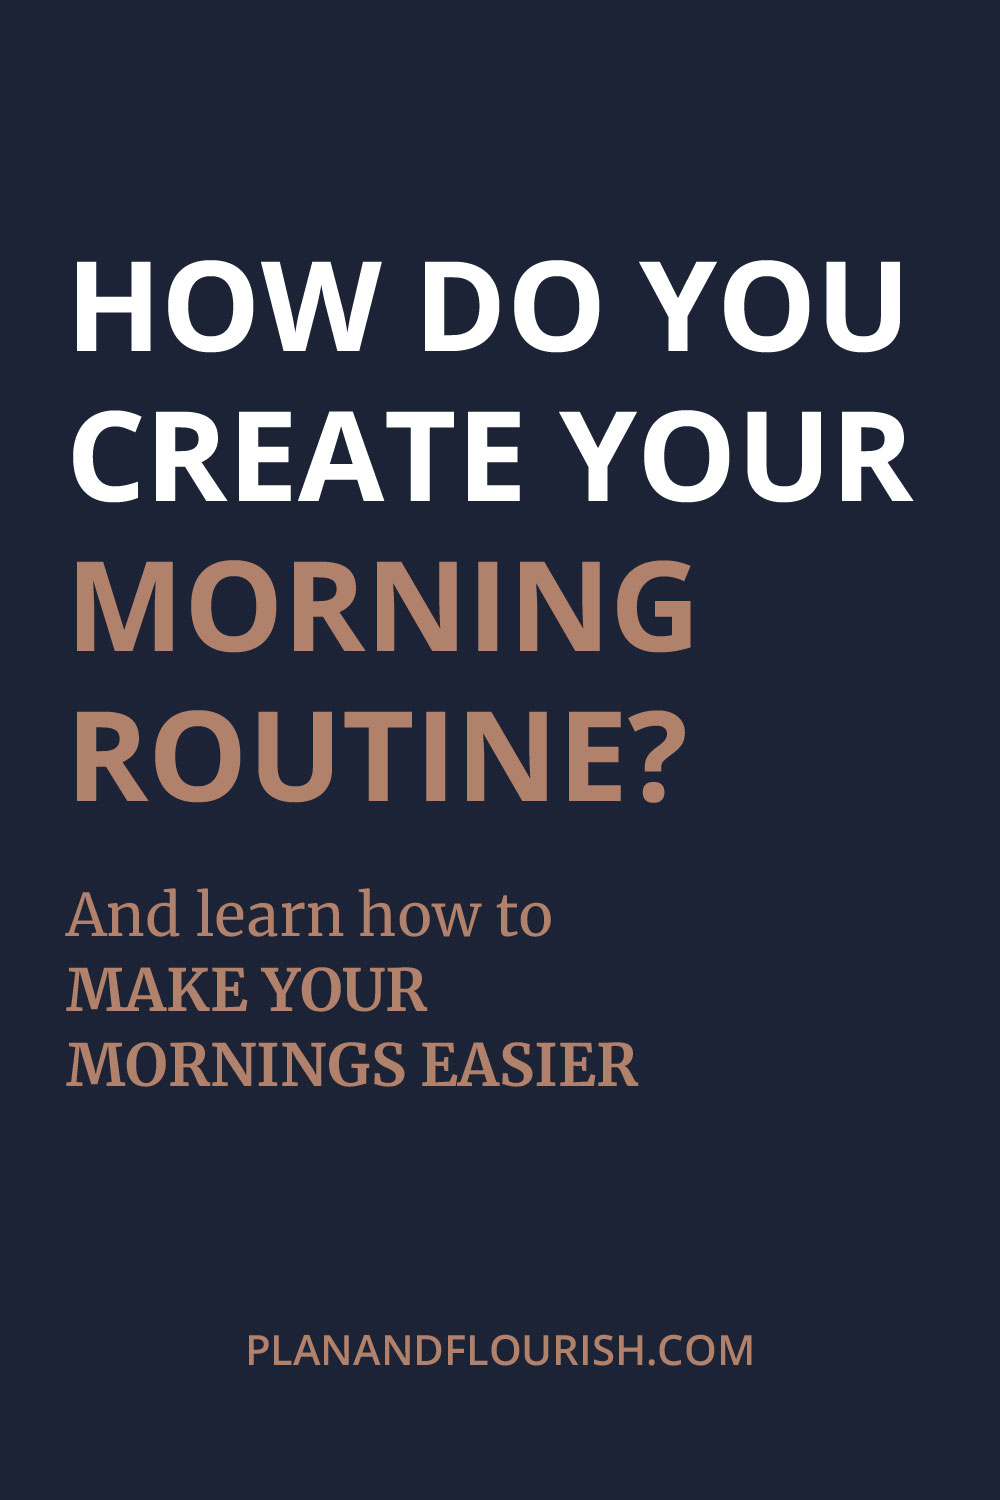 Learn how to make your mornings easier and have a successful morning routine. | Read More